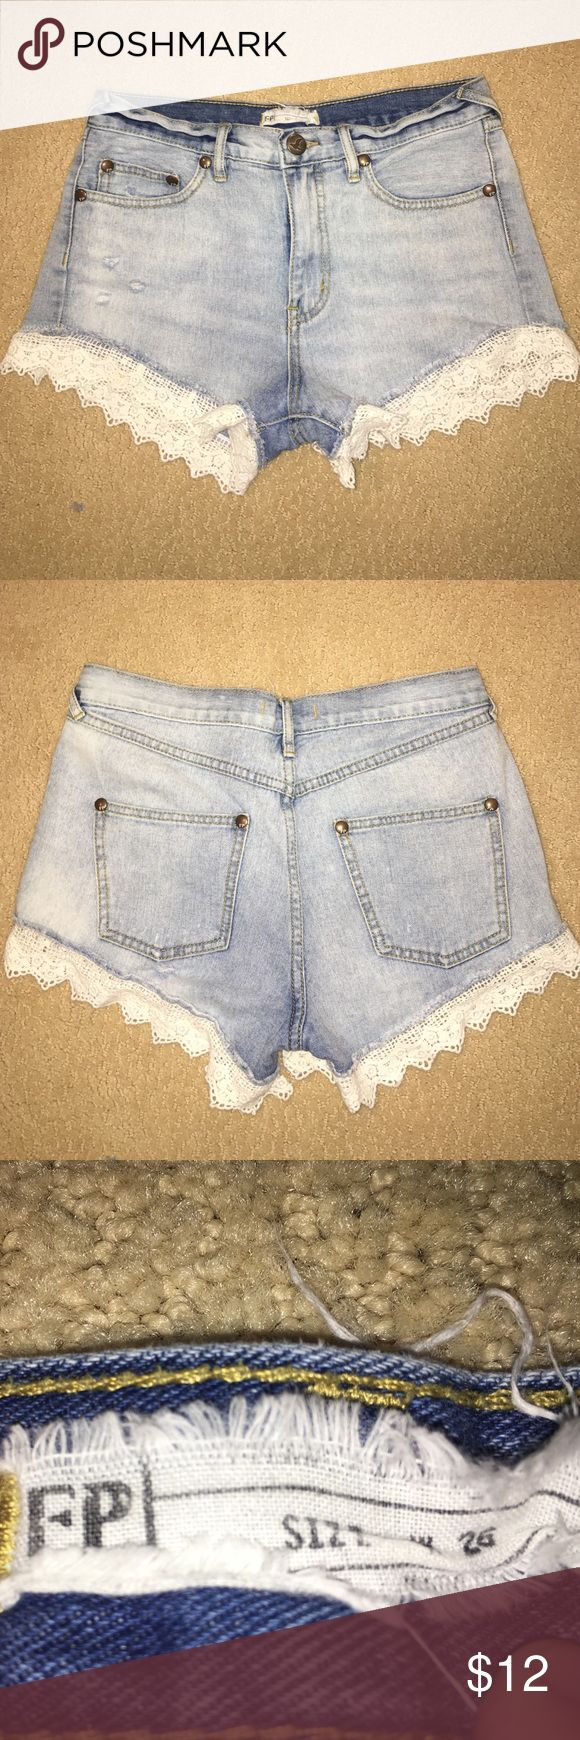 'Free People' Washed Denim Underlace Shorts These 'Free People' shorts were my absolute favorite shorts! They are so fun, girly, comfortable, and form-fitting and they go with any type of style! They have a BEAUTIFUL lace pattern at the bottom of the shorts. The lace has a crocheted look that helps make any girl look super chic and boho! Free People Shorts Jean Shorts